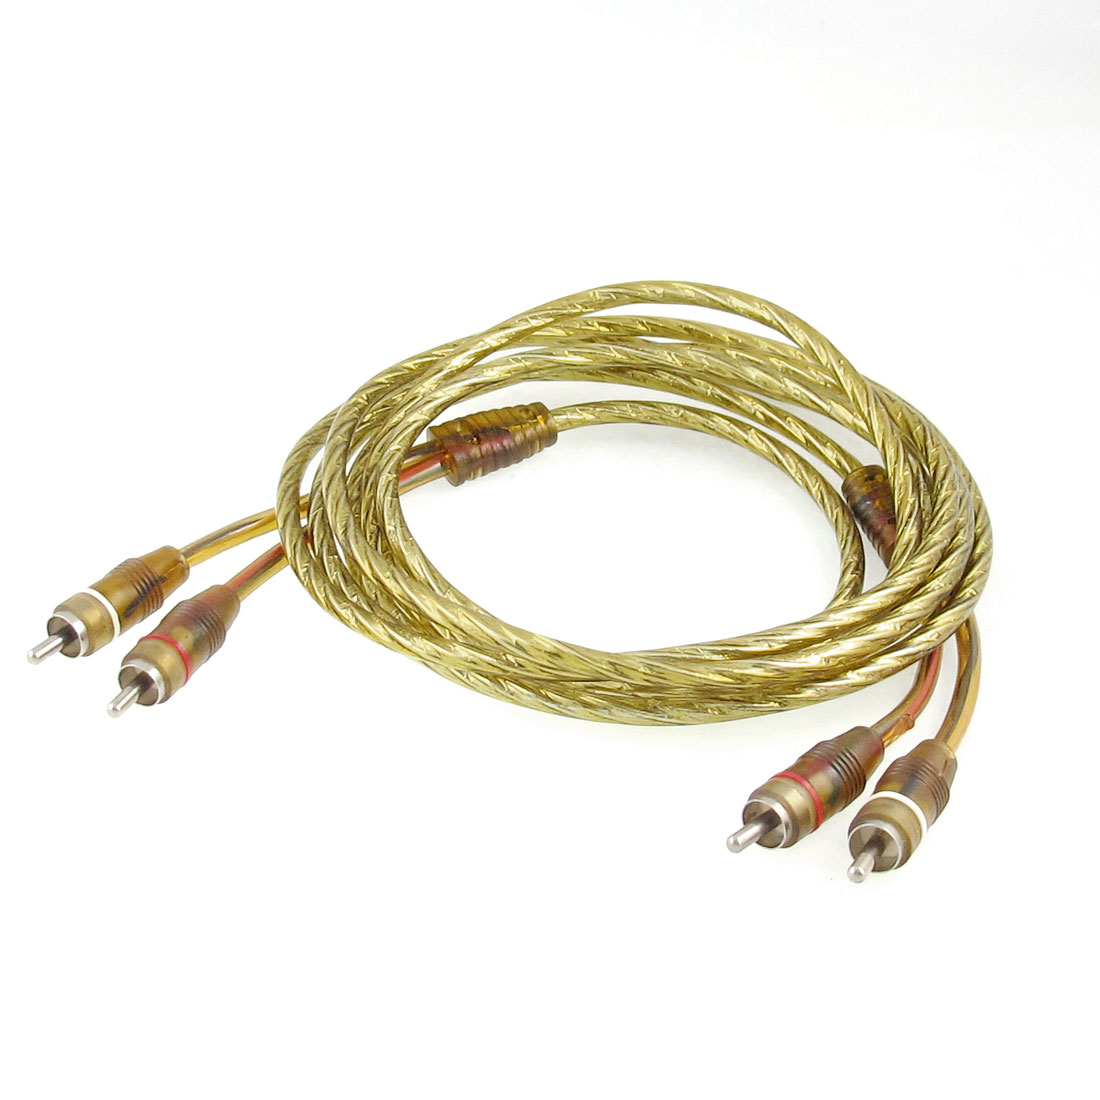 Gold Tone 2.2M Long 2 Male RCA to 2 Male RCA Audio Cable for DVD TV